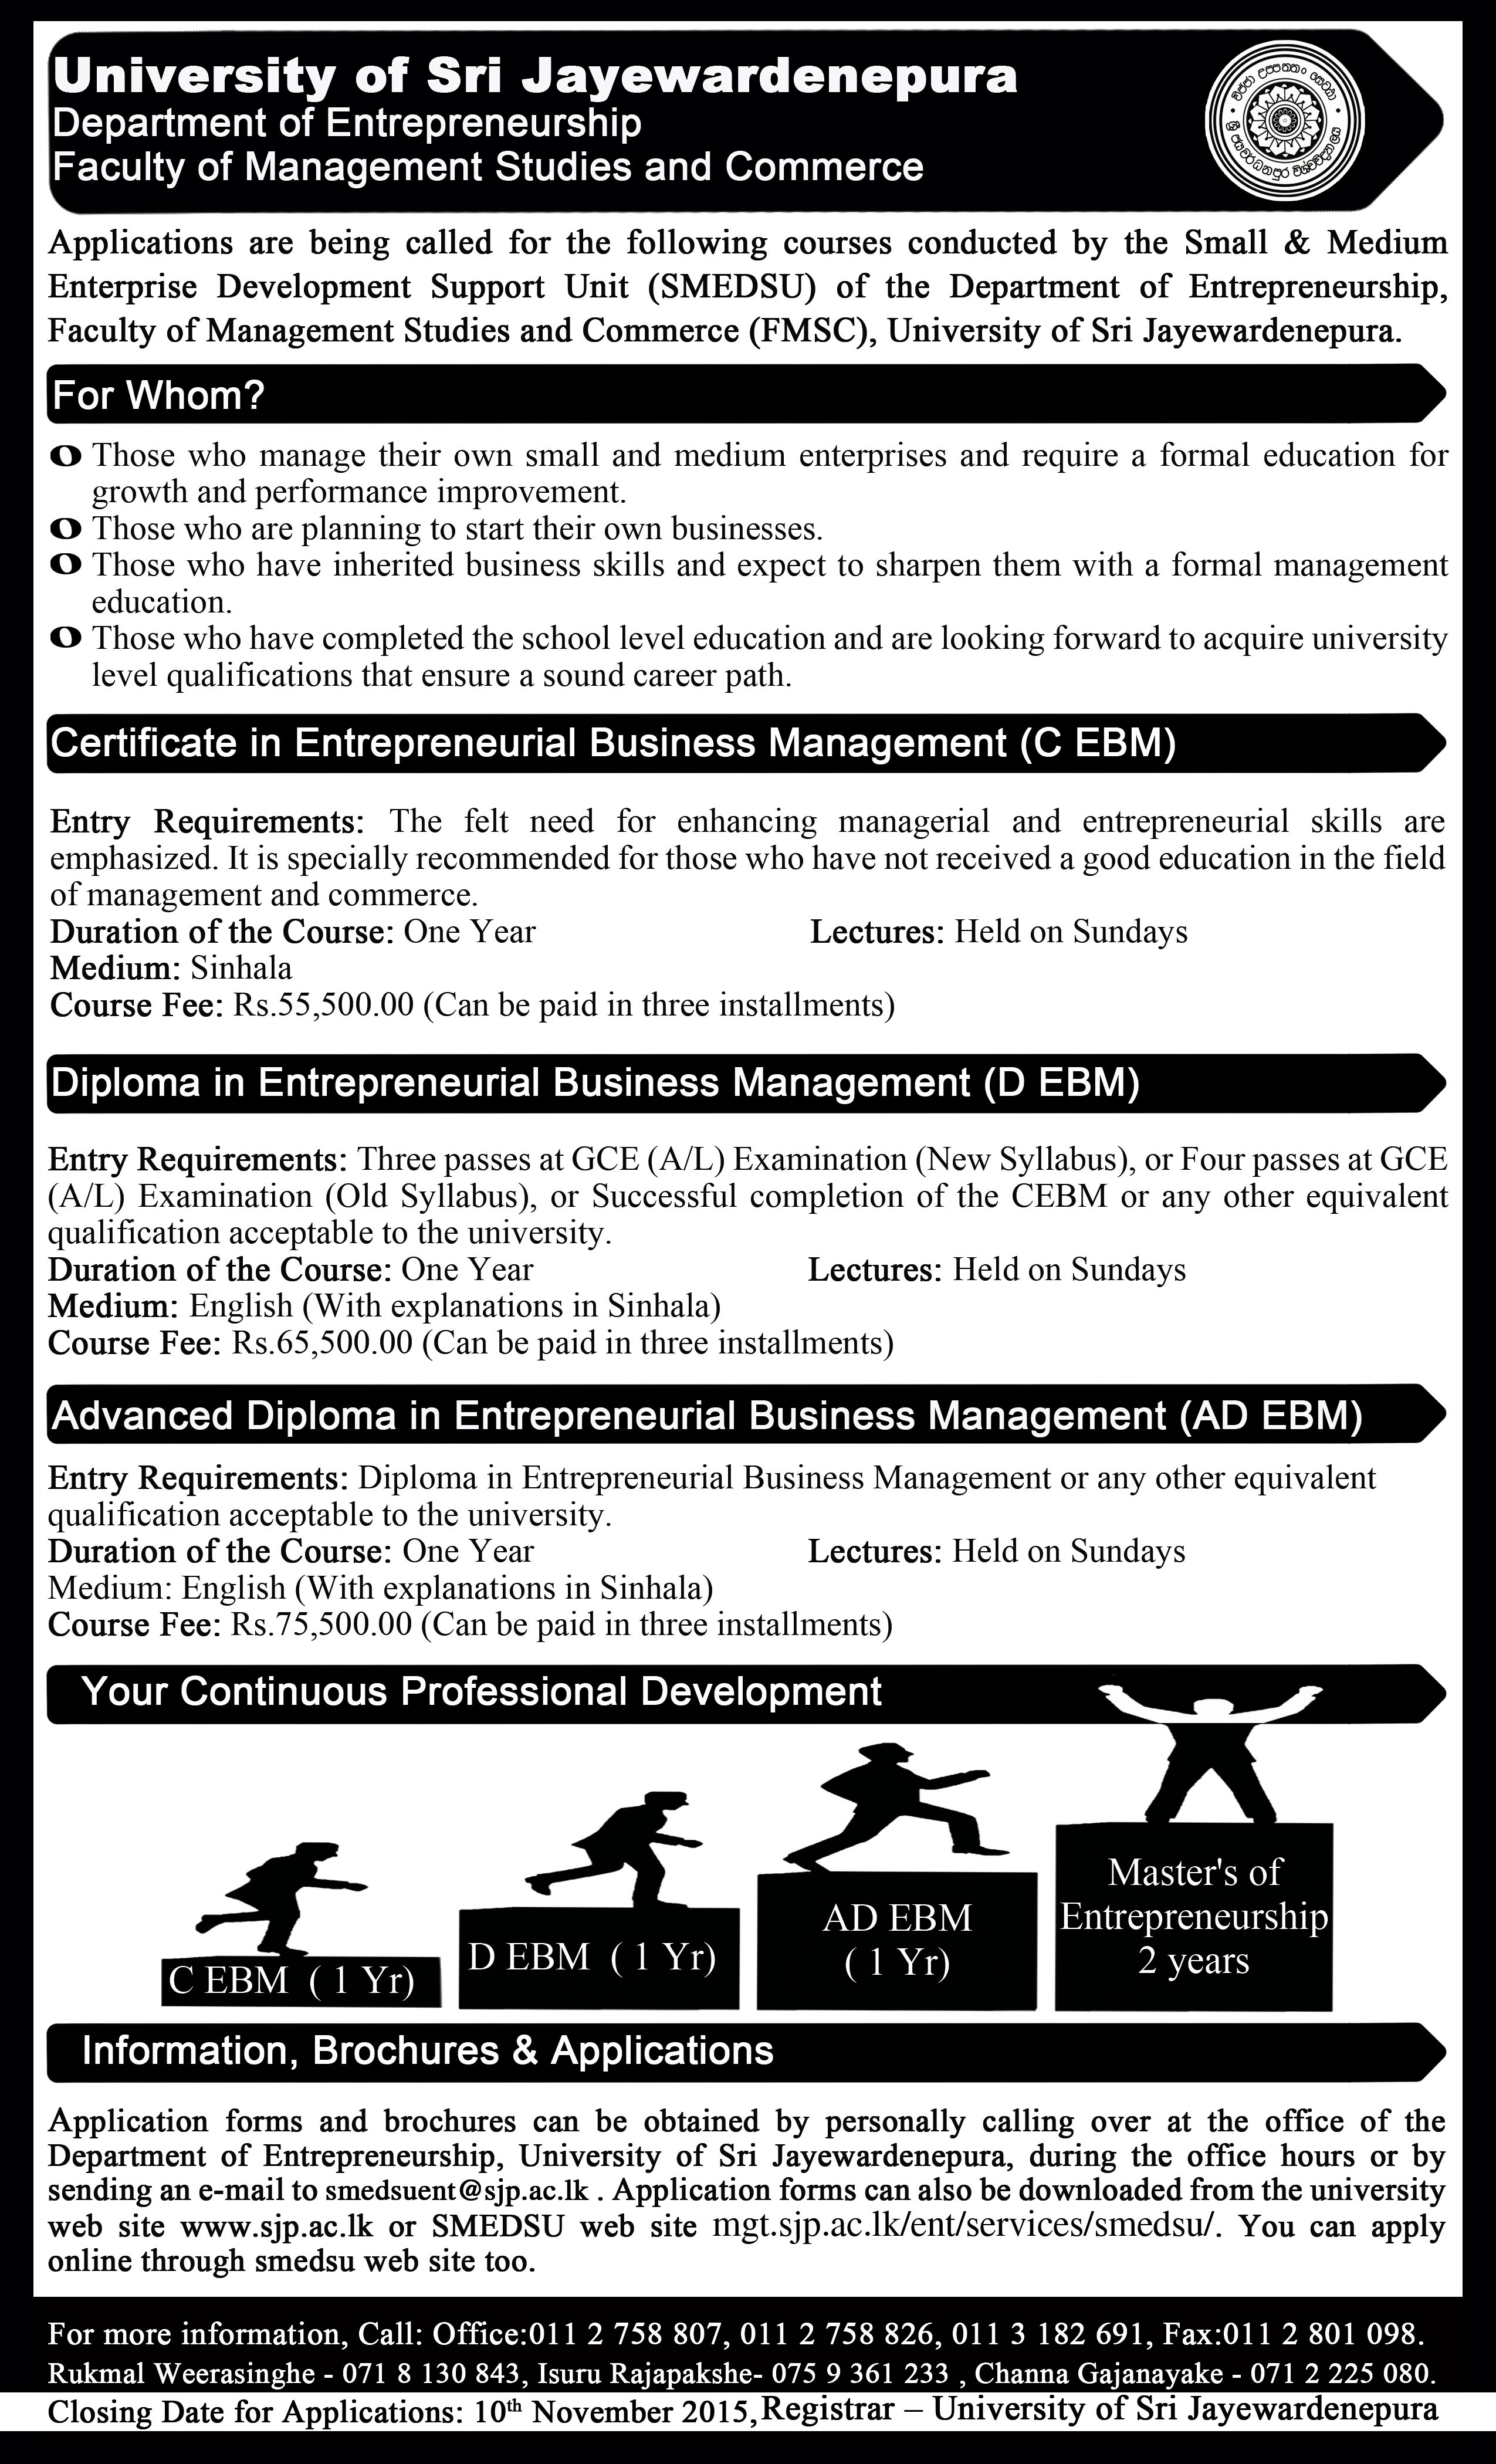 entrepreneurial management essay Below is an essay on entrepreneurial leadership within management succe from anti essays, your source for research papers, essays, and term paper examples entrepreneurial leadership within management success: a new paradigm.